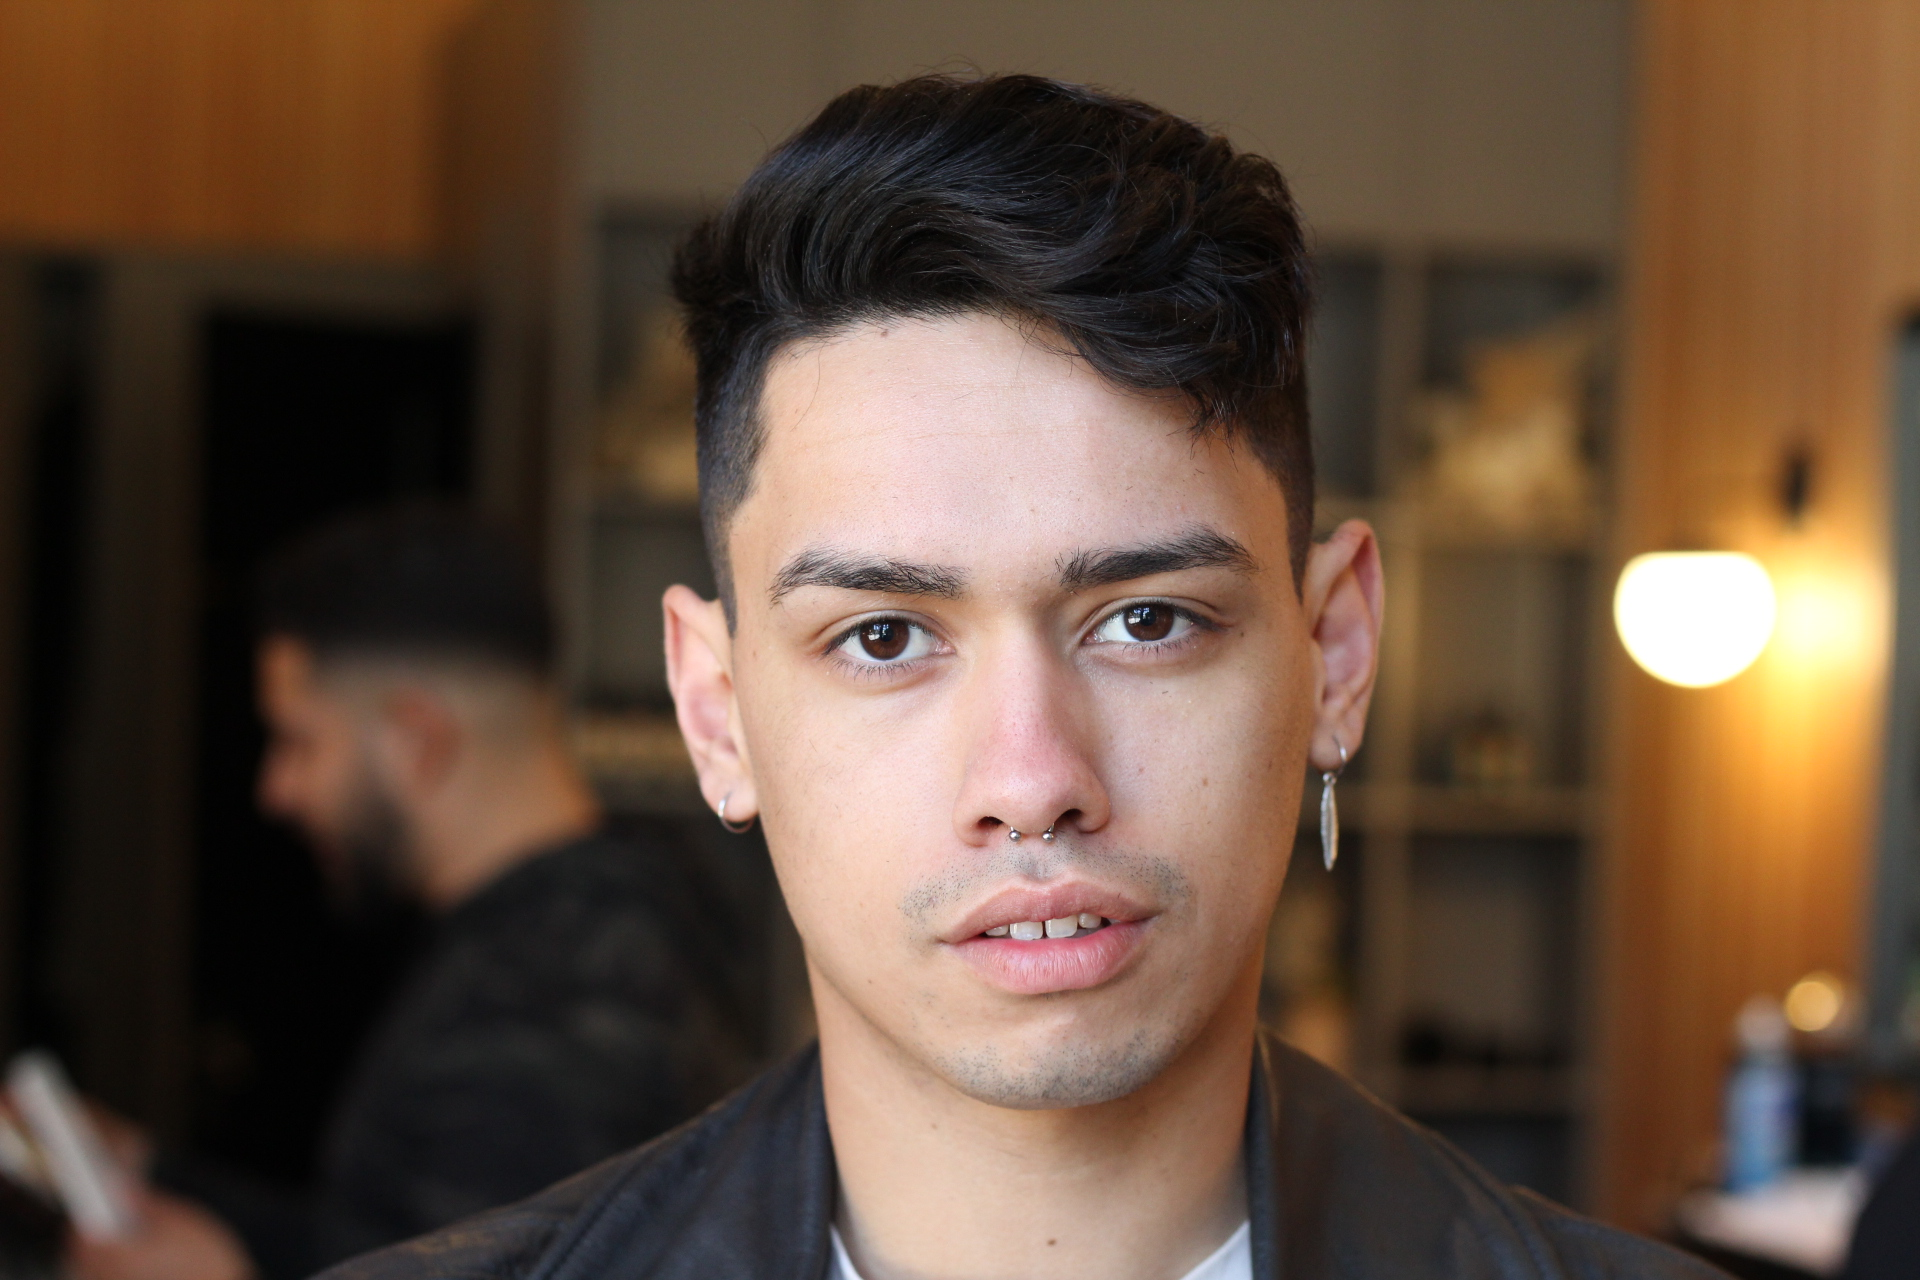 Styled Scissor Cut - At Church we typically use a combination of scissors and clippers, depending on the haircut requested.  For those who prefer the look of a scissors only haircut, our barbers specialize in providing scissor cuts layered and styled to perfection.